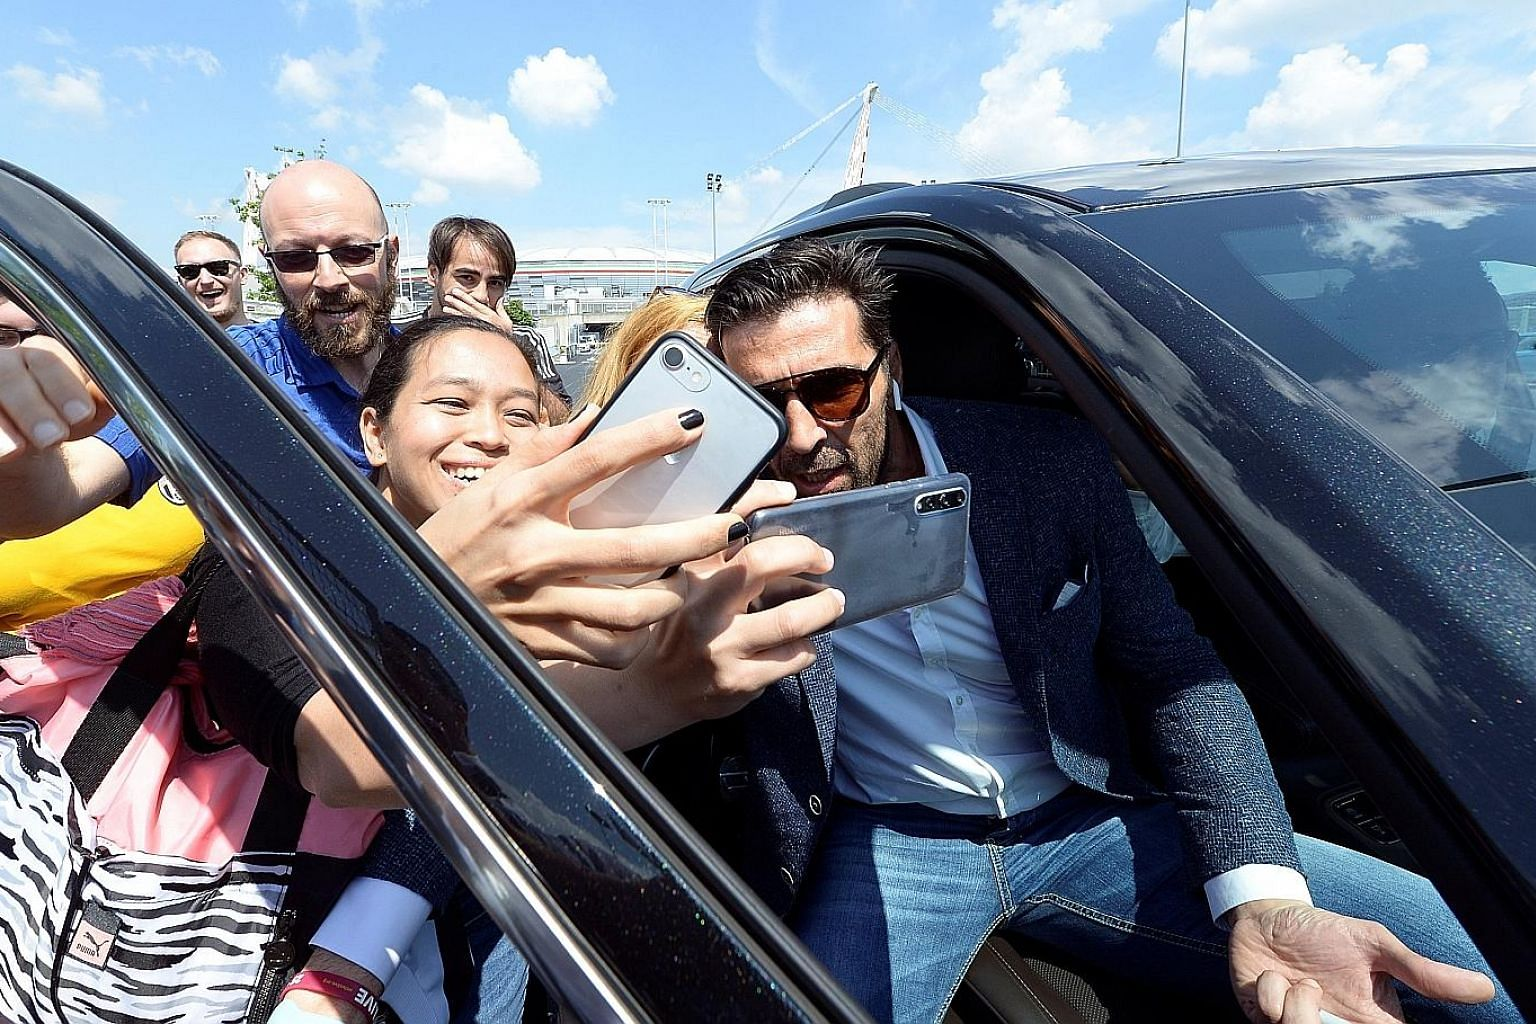 Juventus goalkeeper Gianluigi Buffon poses for pictures with fans in front of the Allianz Stadium after a news conference in Turin yesterday.